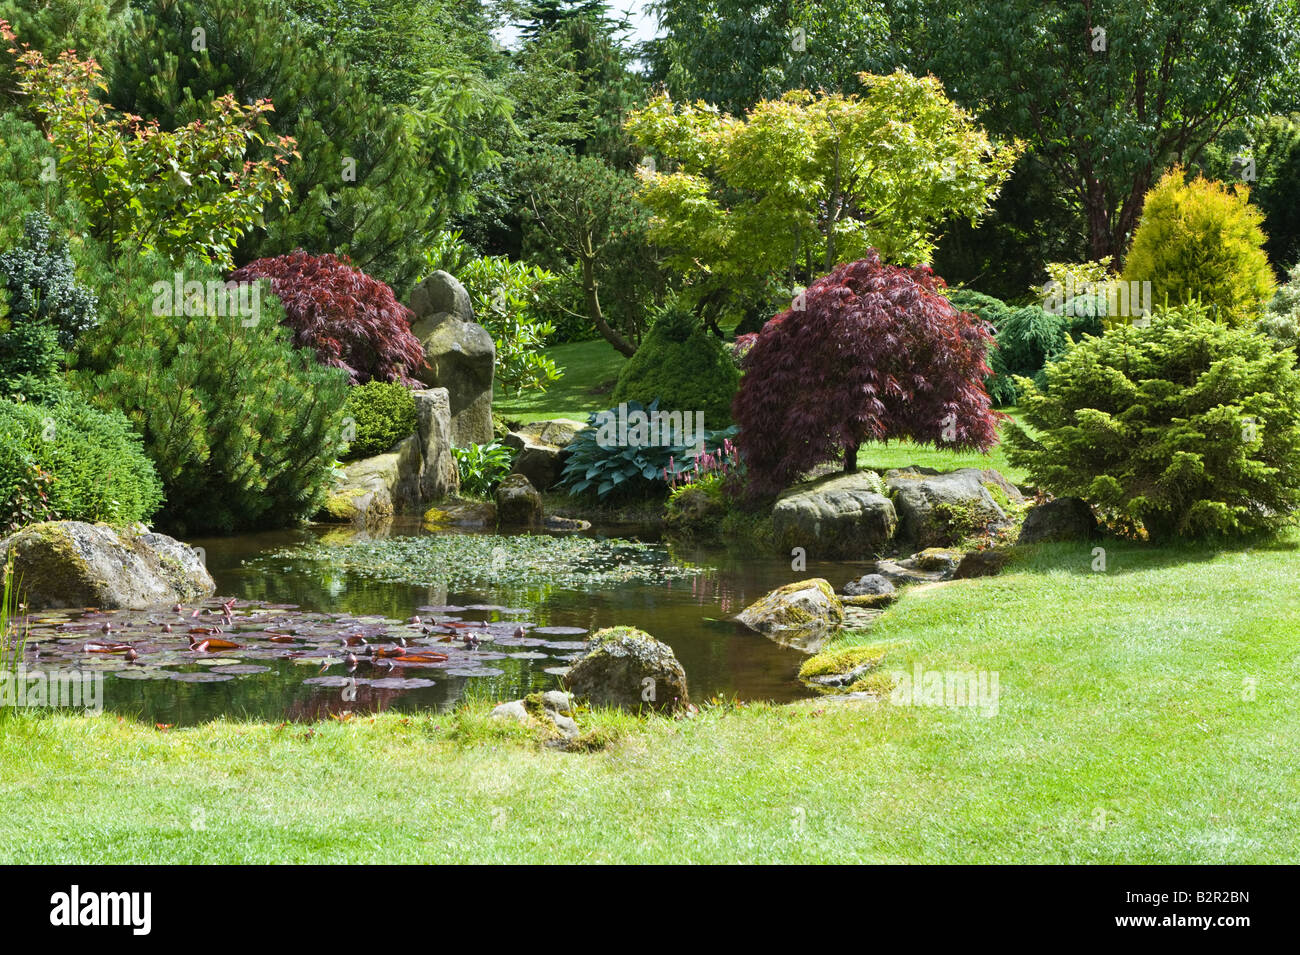 Grit-stone rocks bushes trees and pond in garden design by Bahaa Seedhom North Yorkshire England May - Stock Image